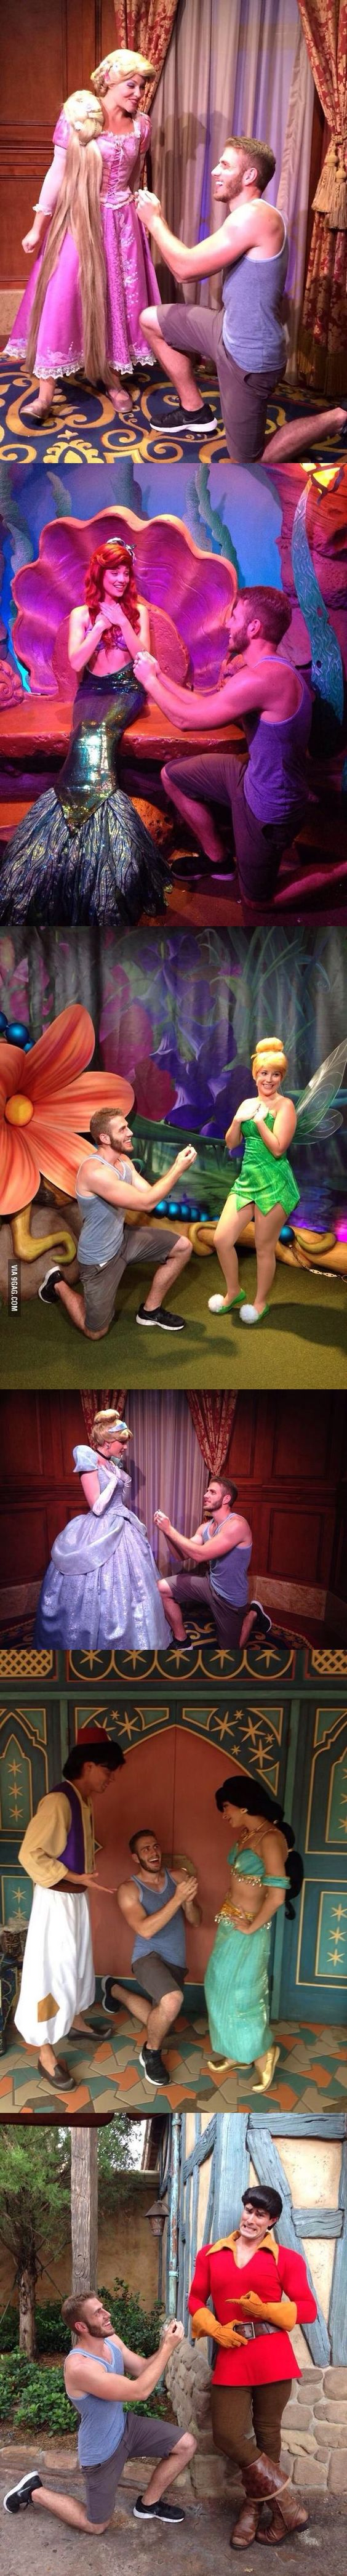 Guy proposes to various Disney characters